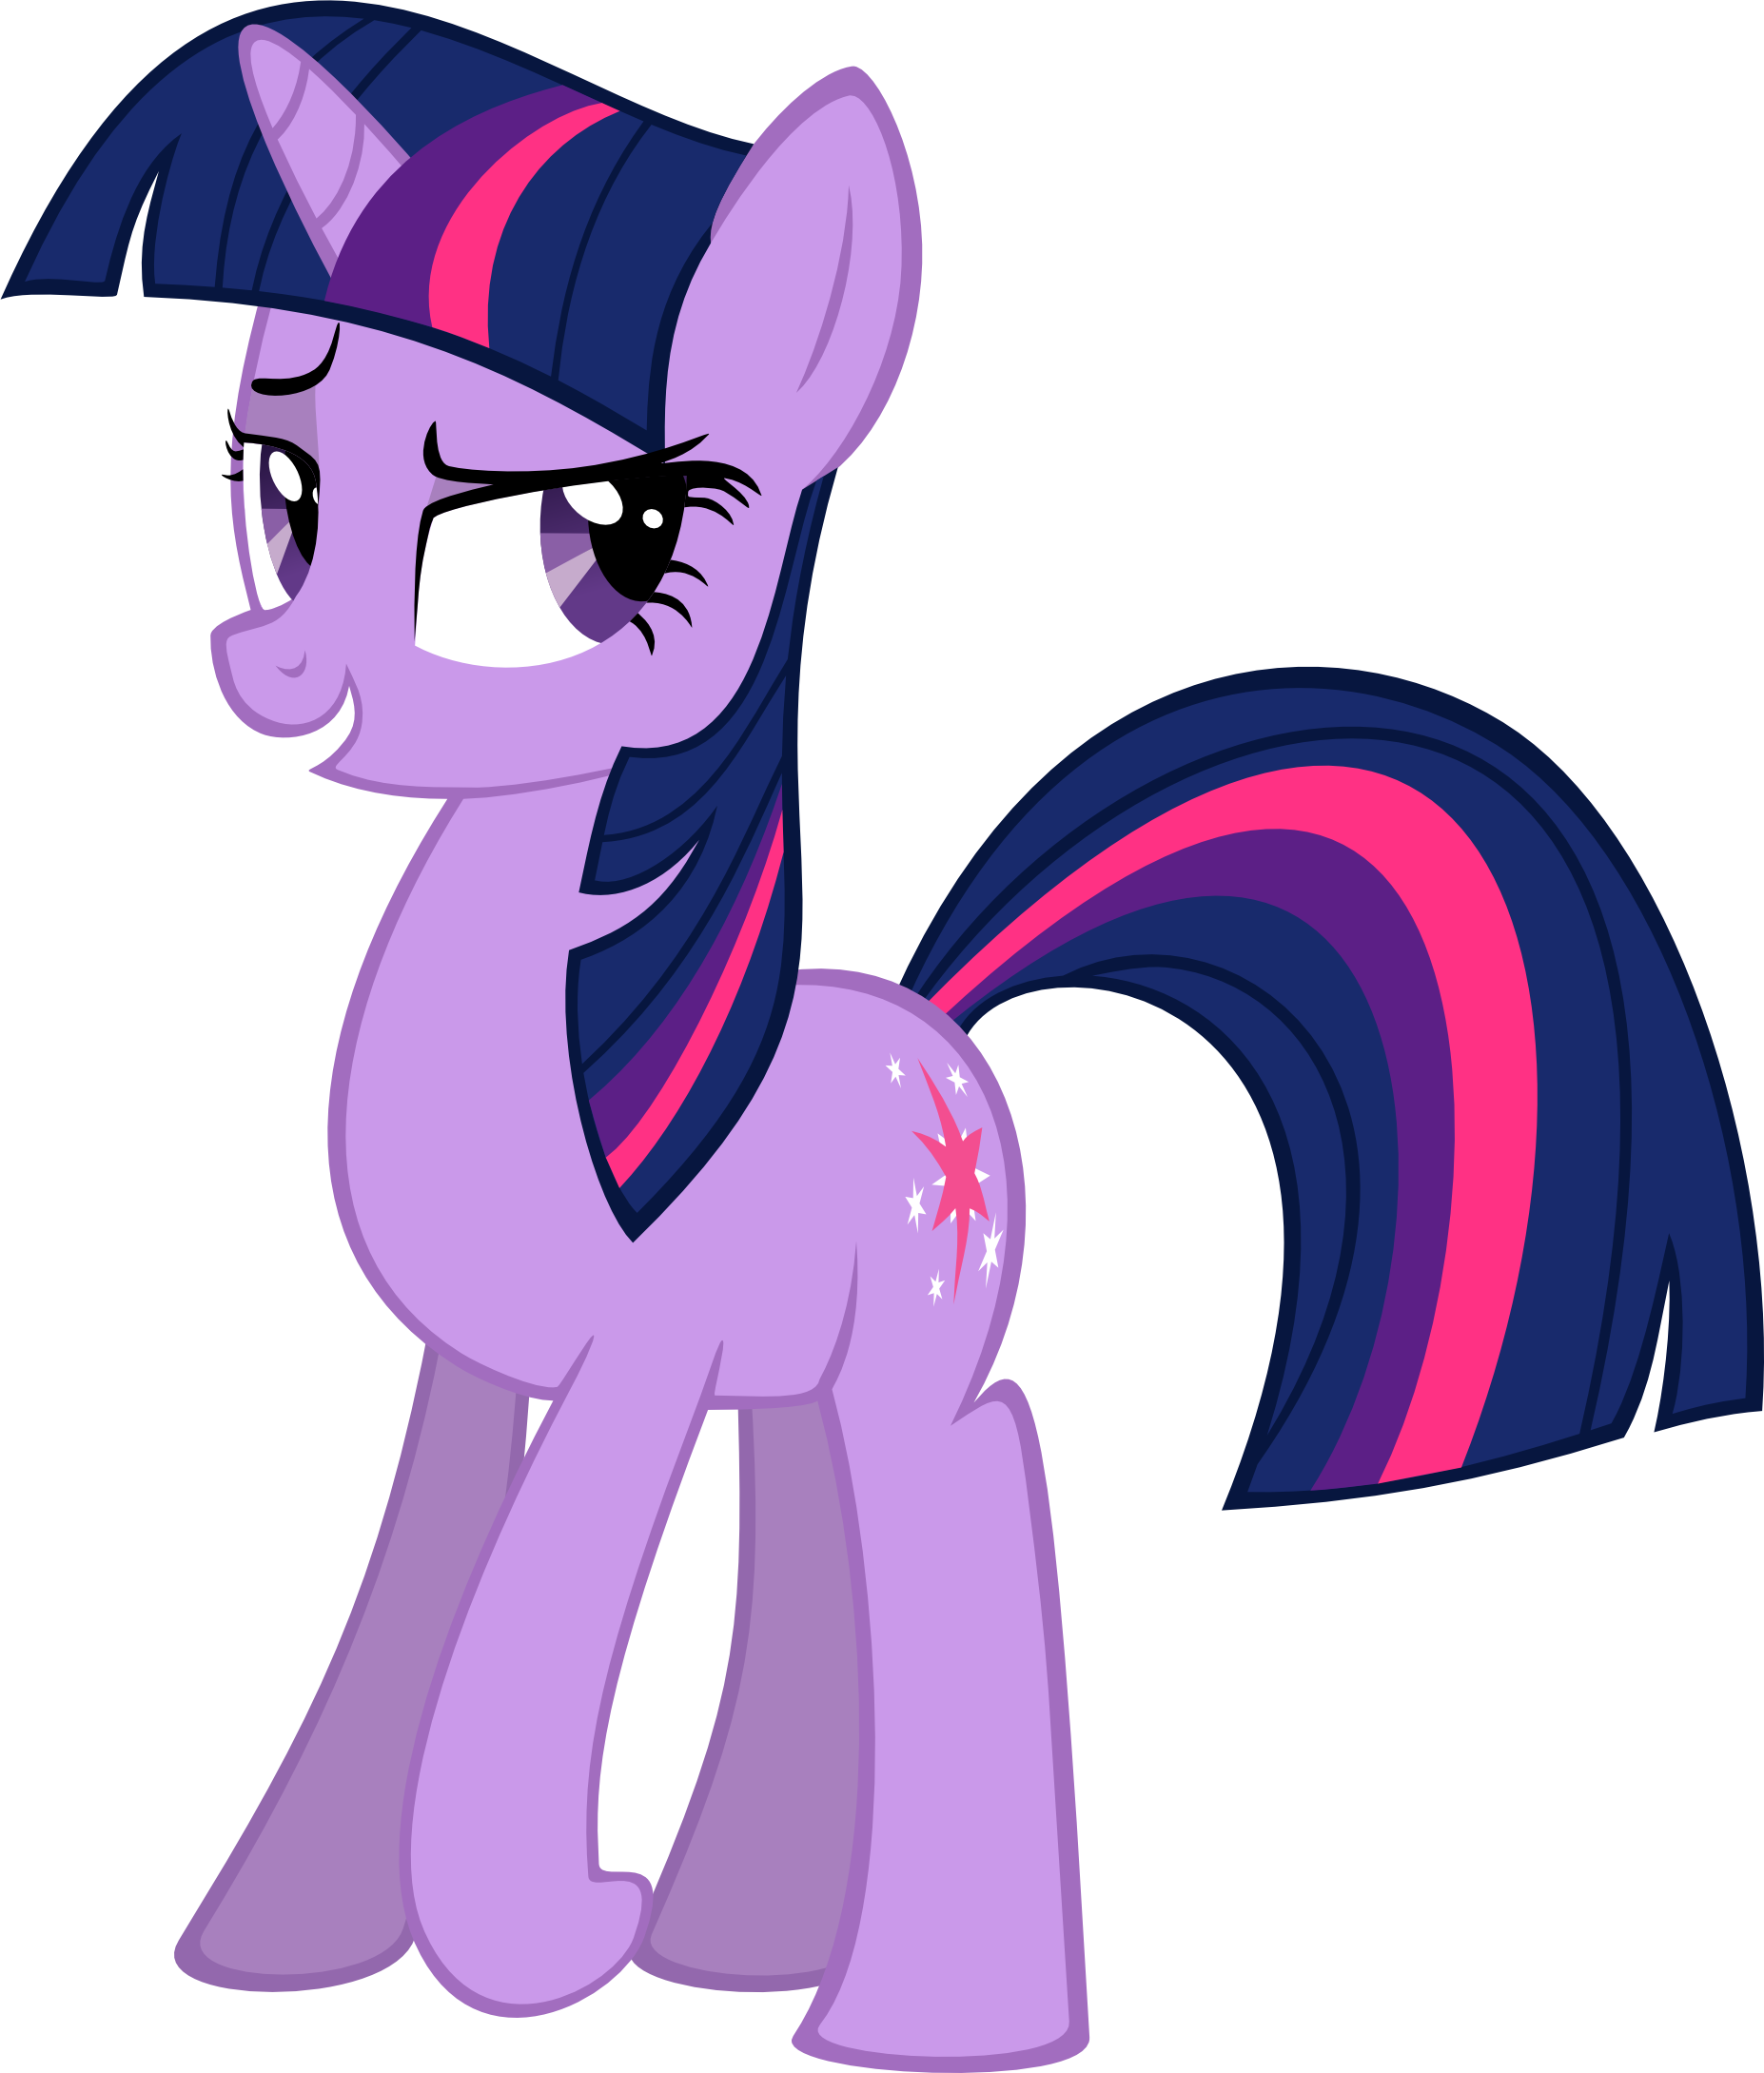 Character transparent my little pony. Twilight sparkle friendship is